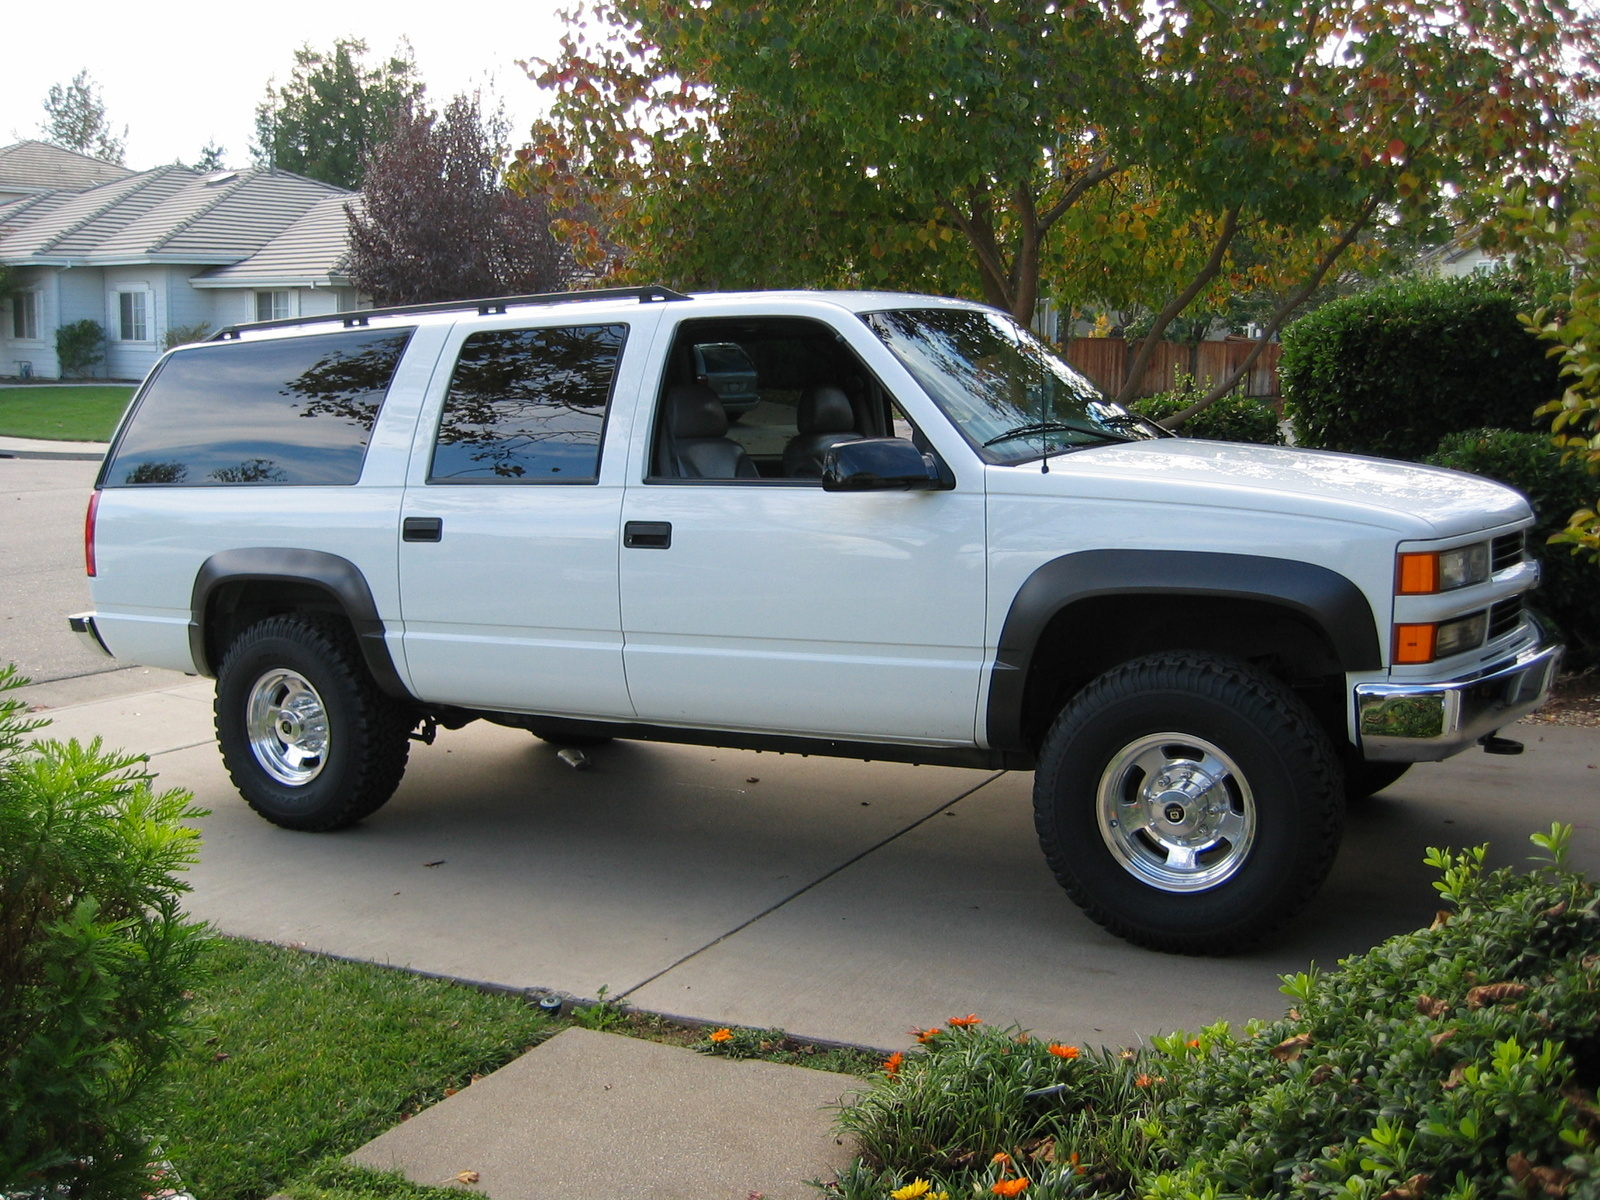 Picture of 1997 chevrolet suburban k2500 4wd exterior gallery_worthy